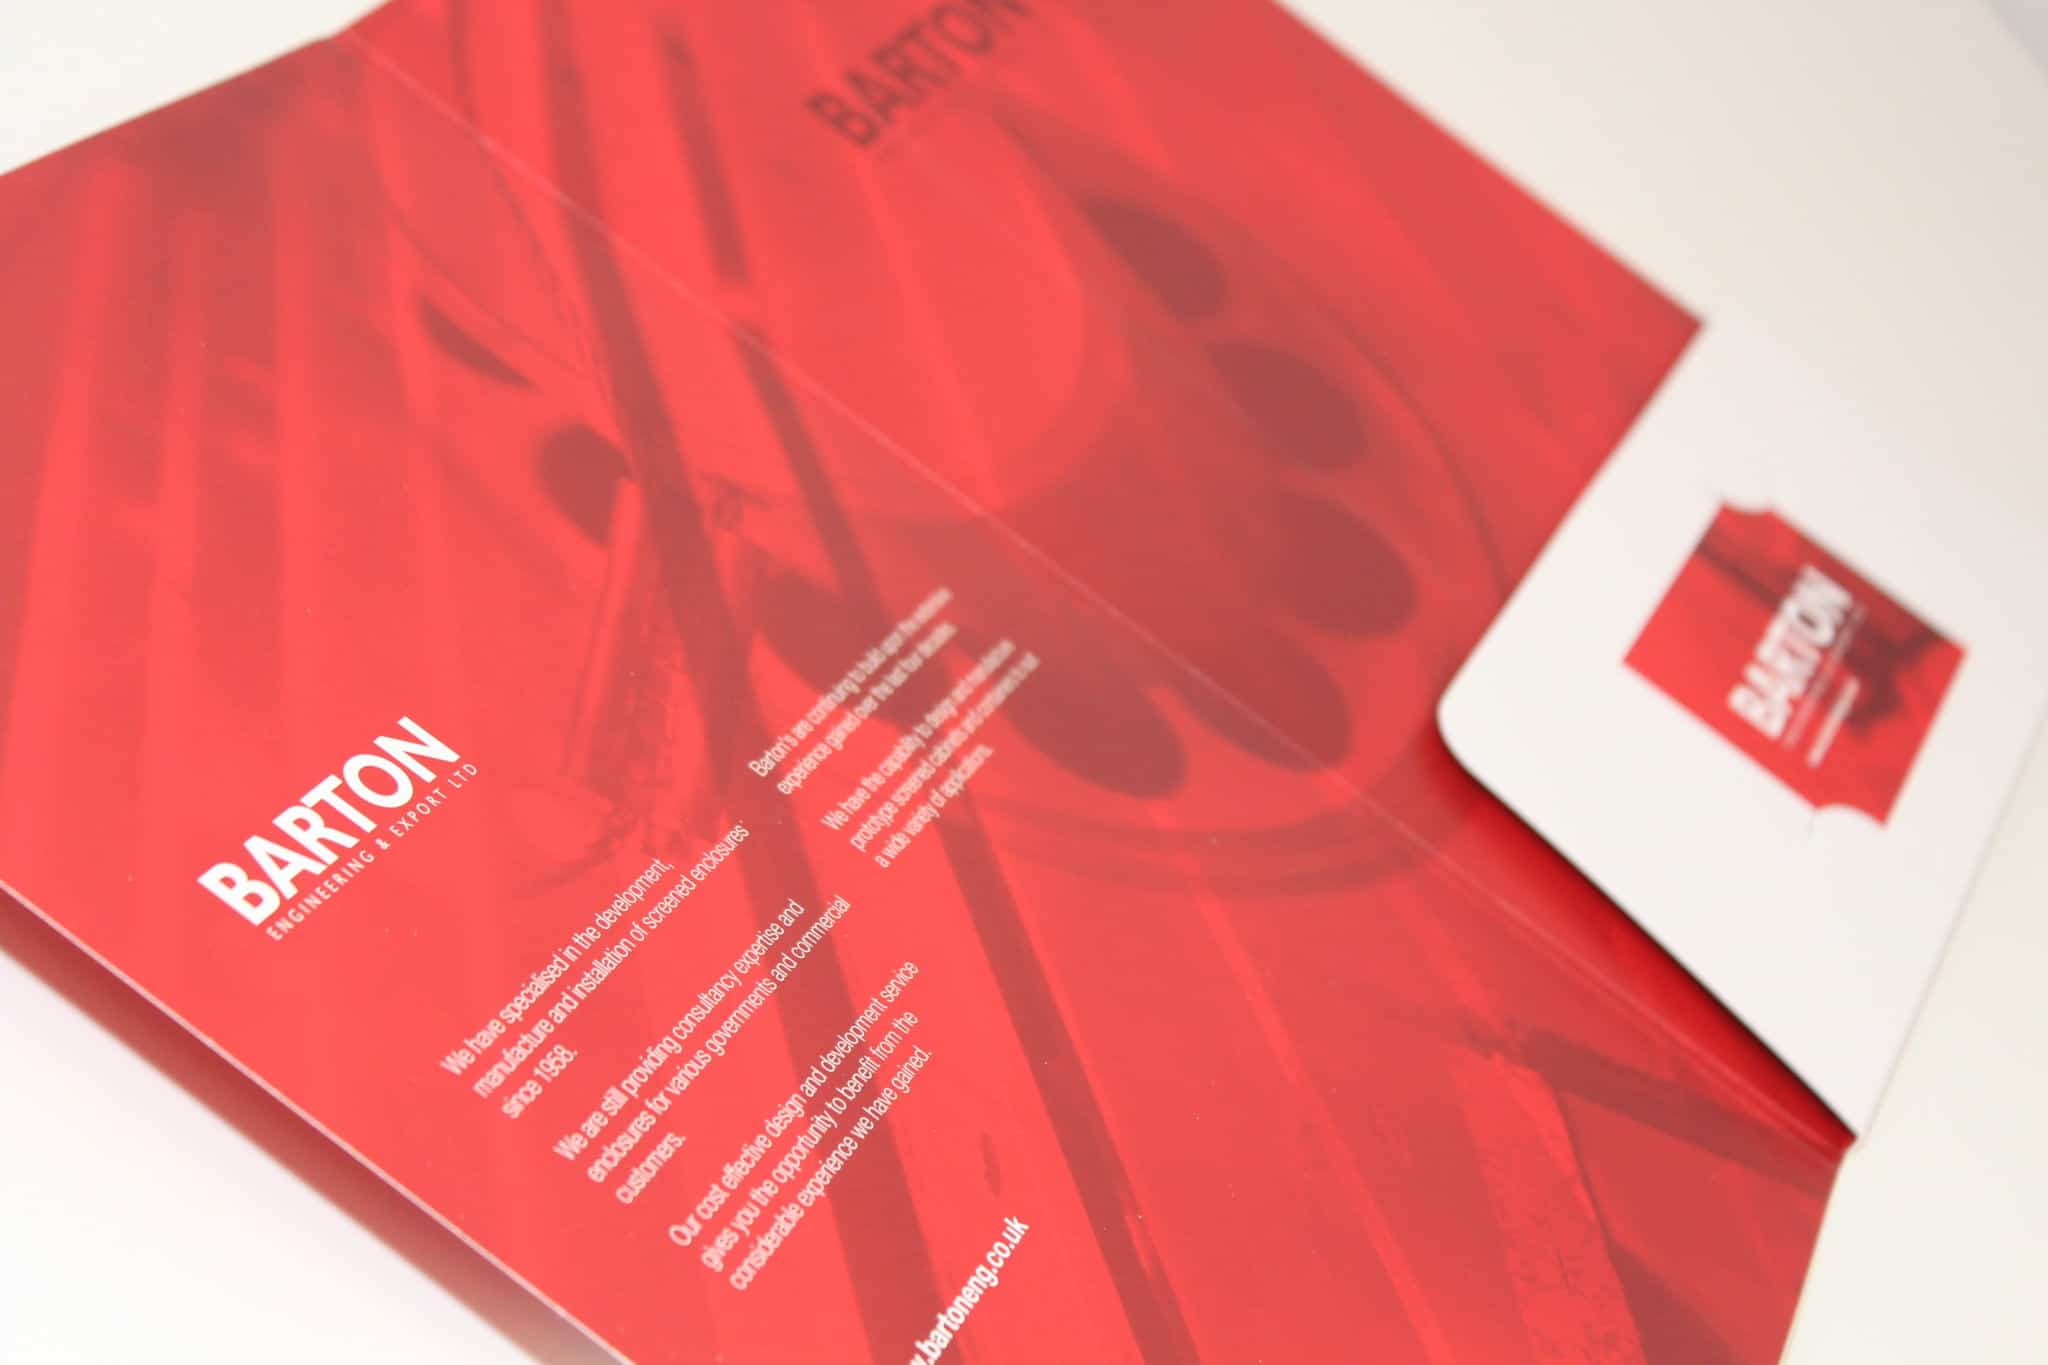 Barton cards by 9G Websites